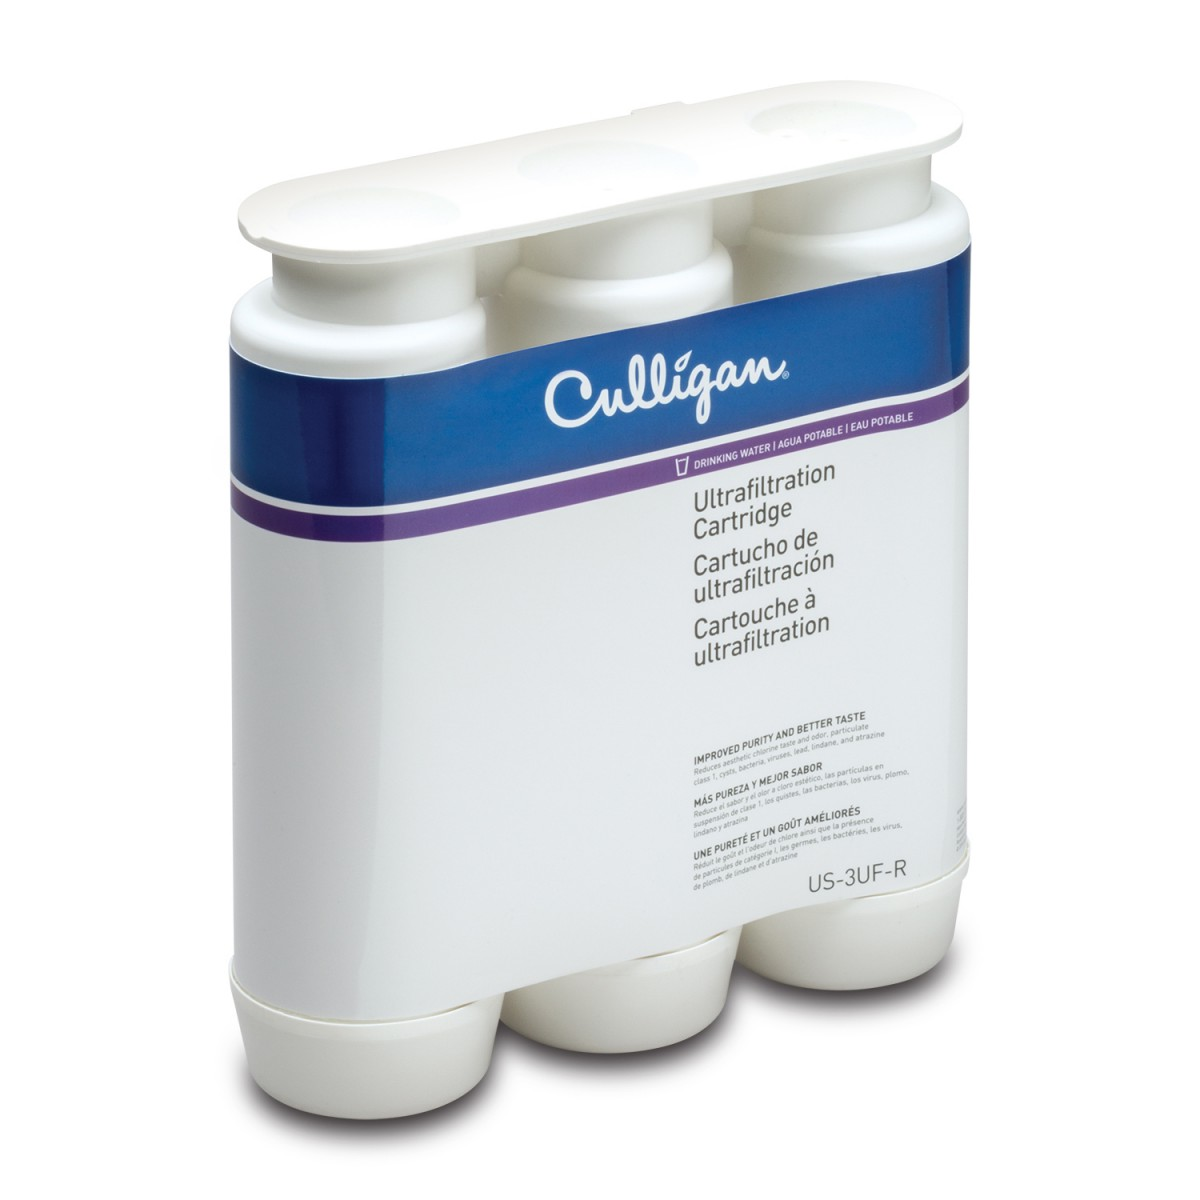 Us 3uf R Culligan Us System Replacement Cassette